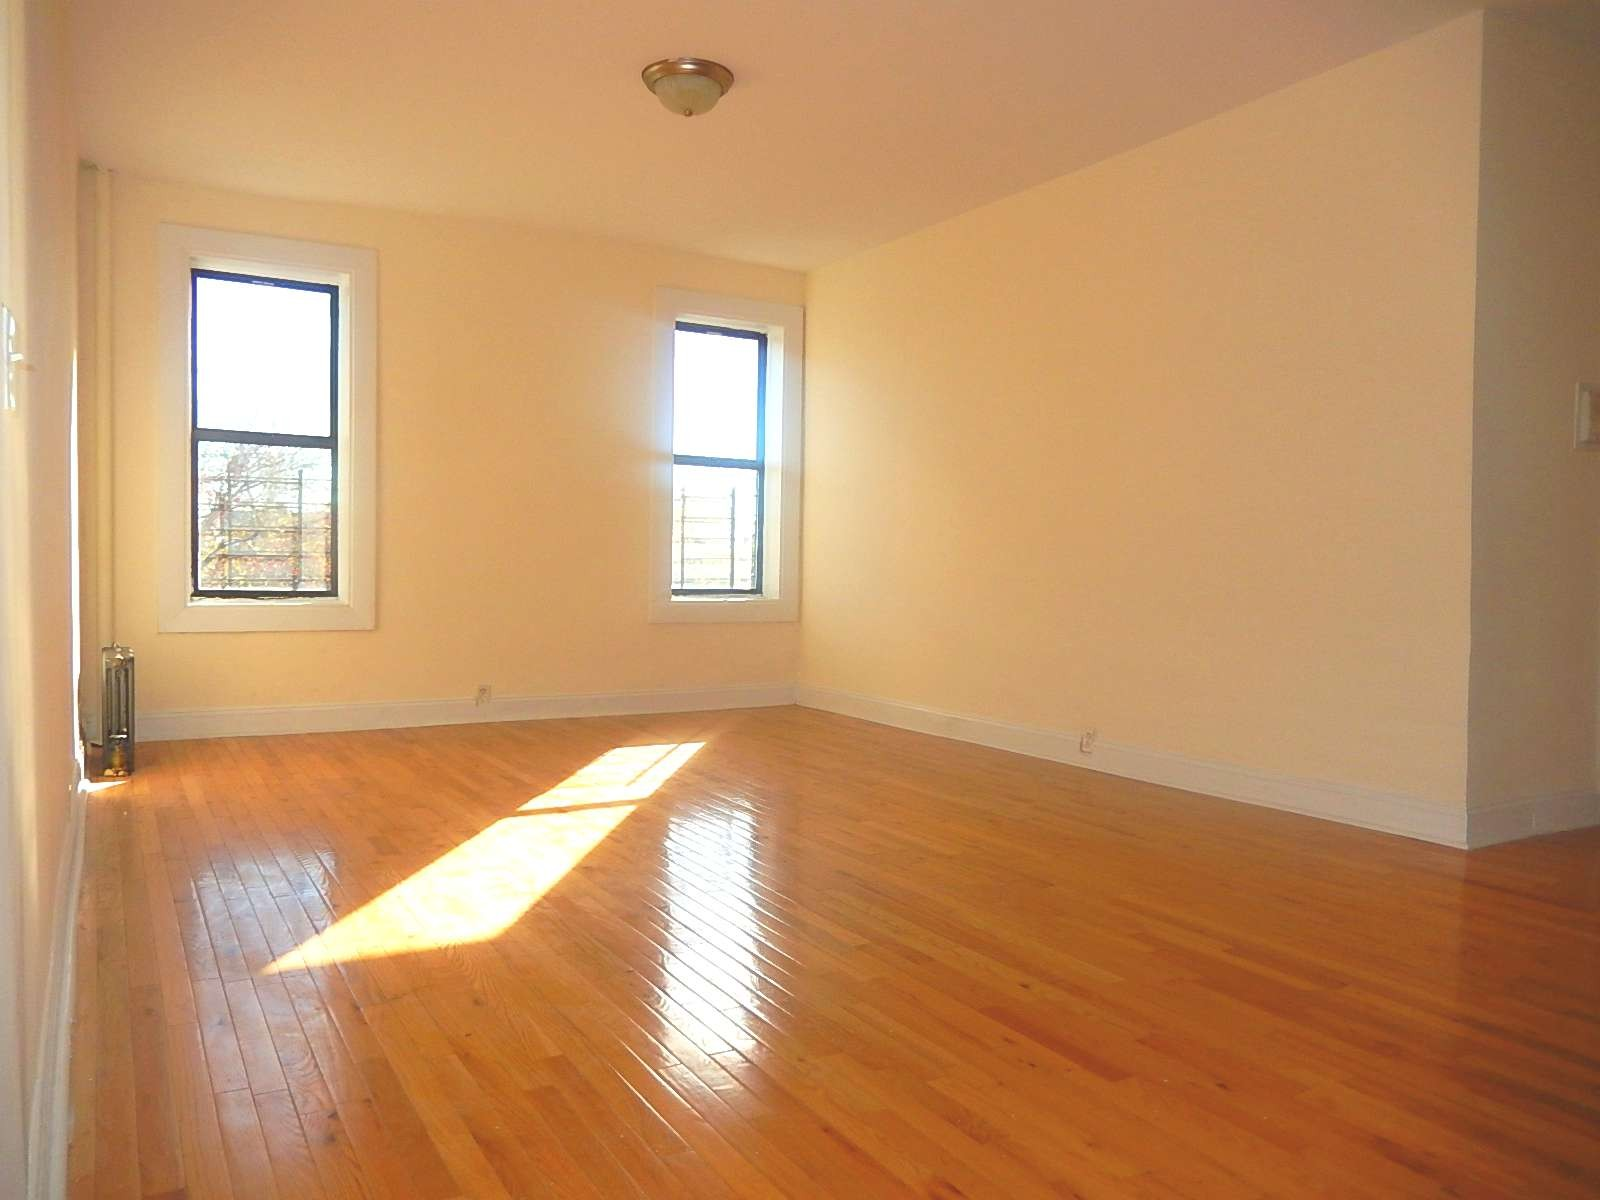 Olmstead Ave 2h Bronx Ny 10462 1 Bedroom Apartment For